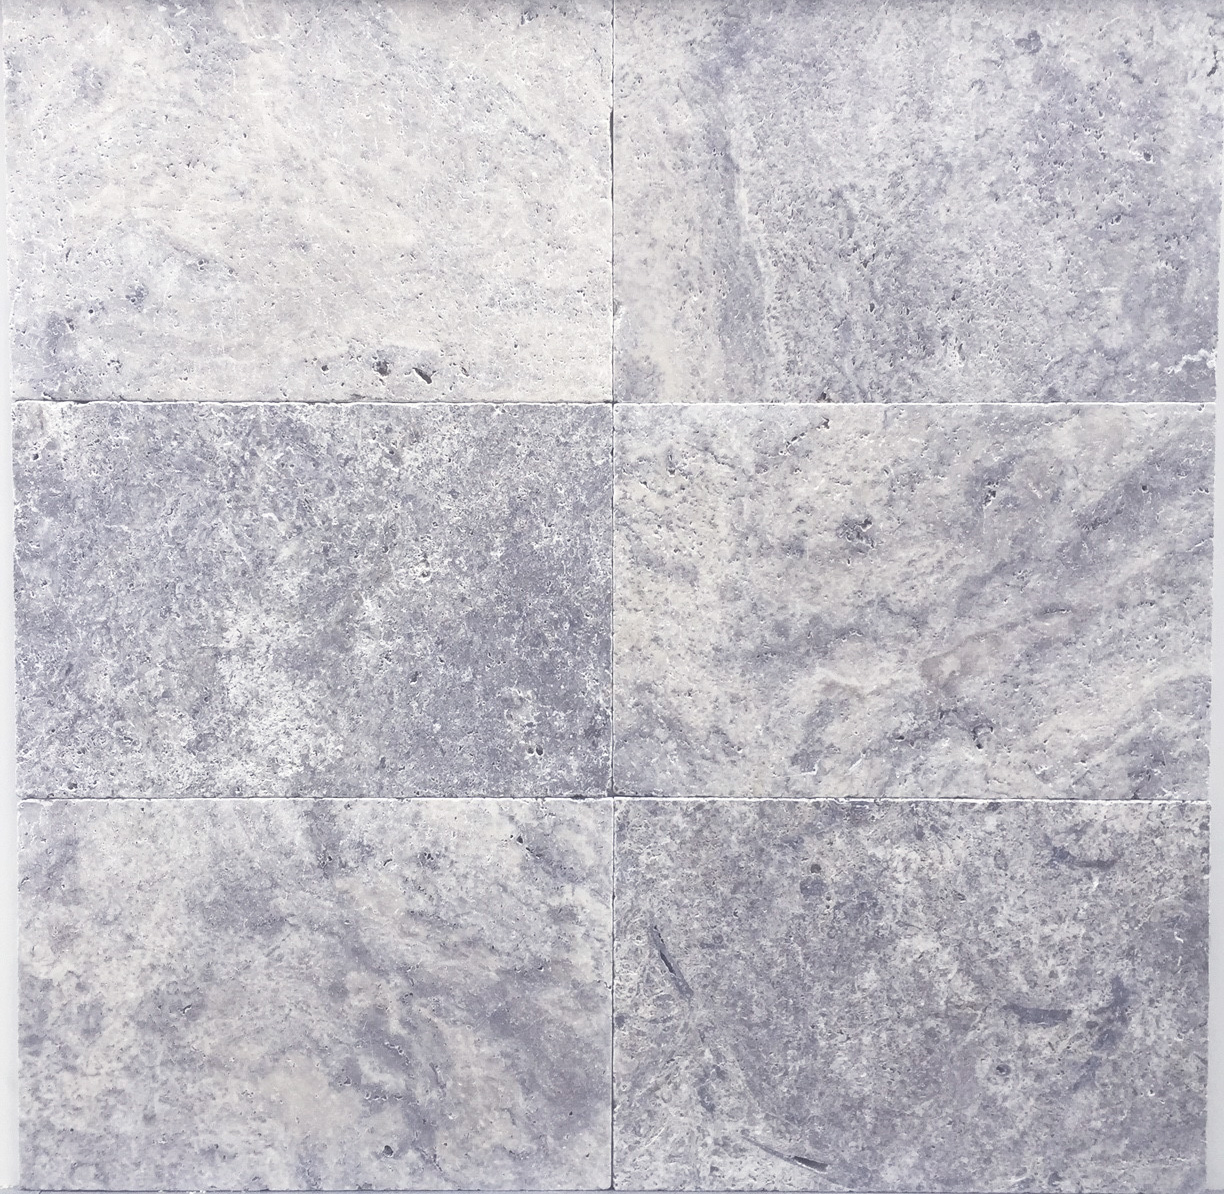 silver travertine 610mm x 406mm with tumbled edges and a non slip brushed and unfilled surface